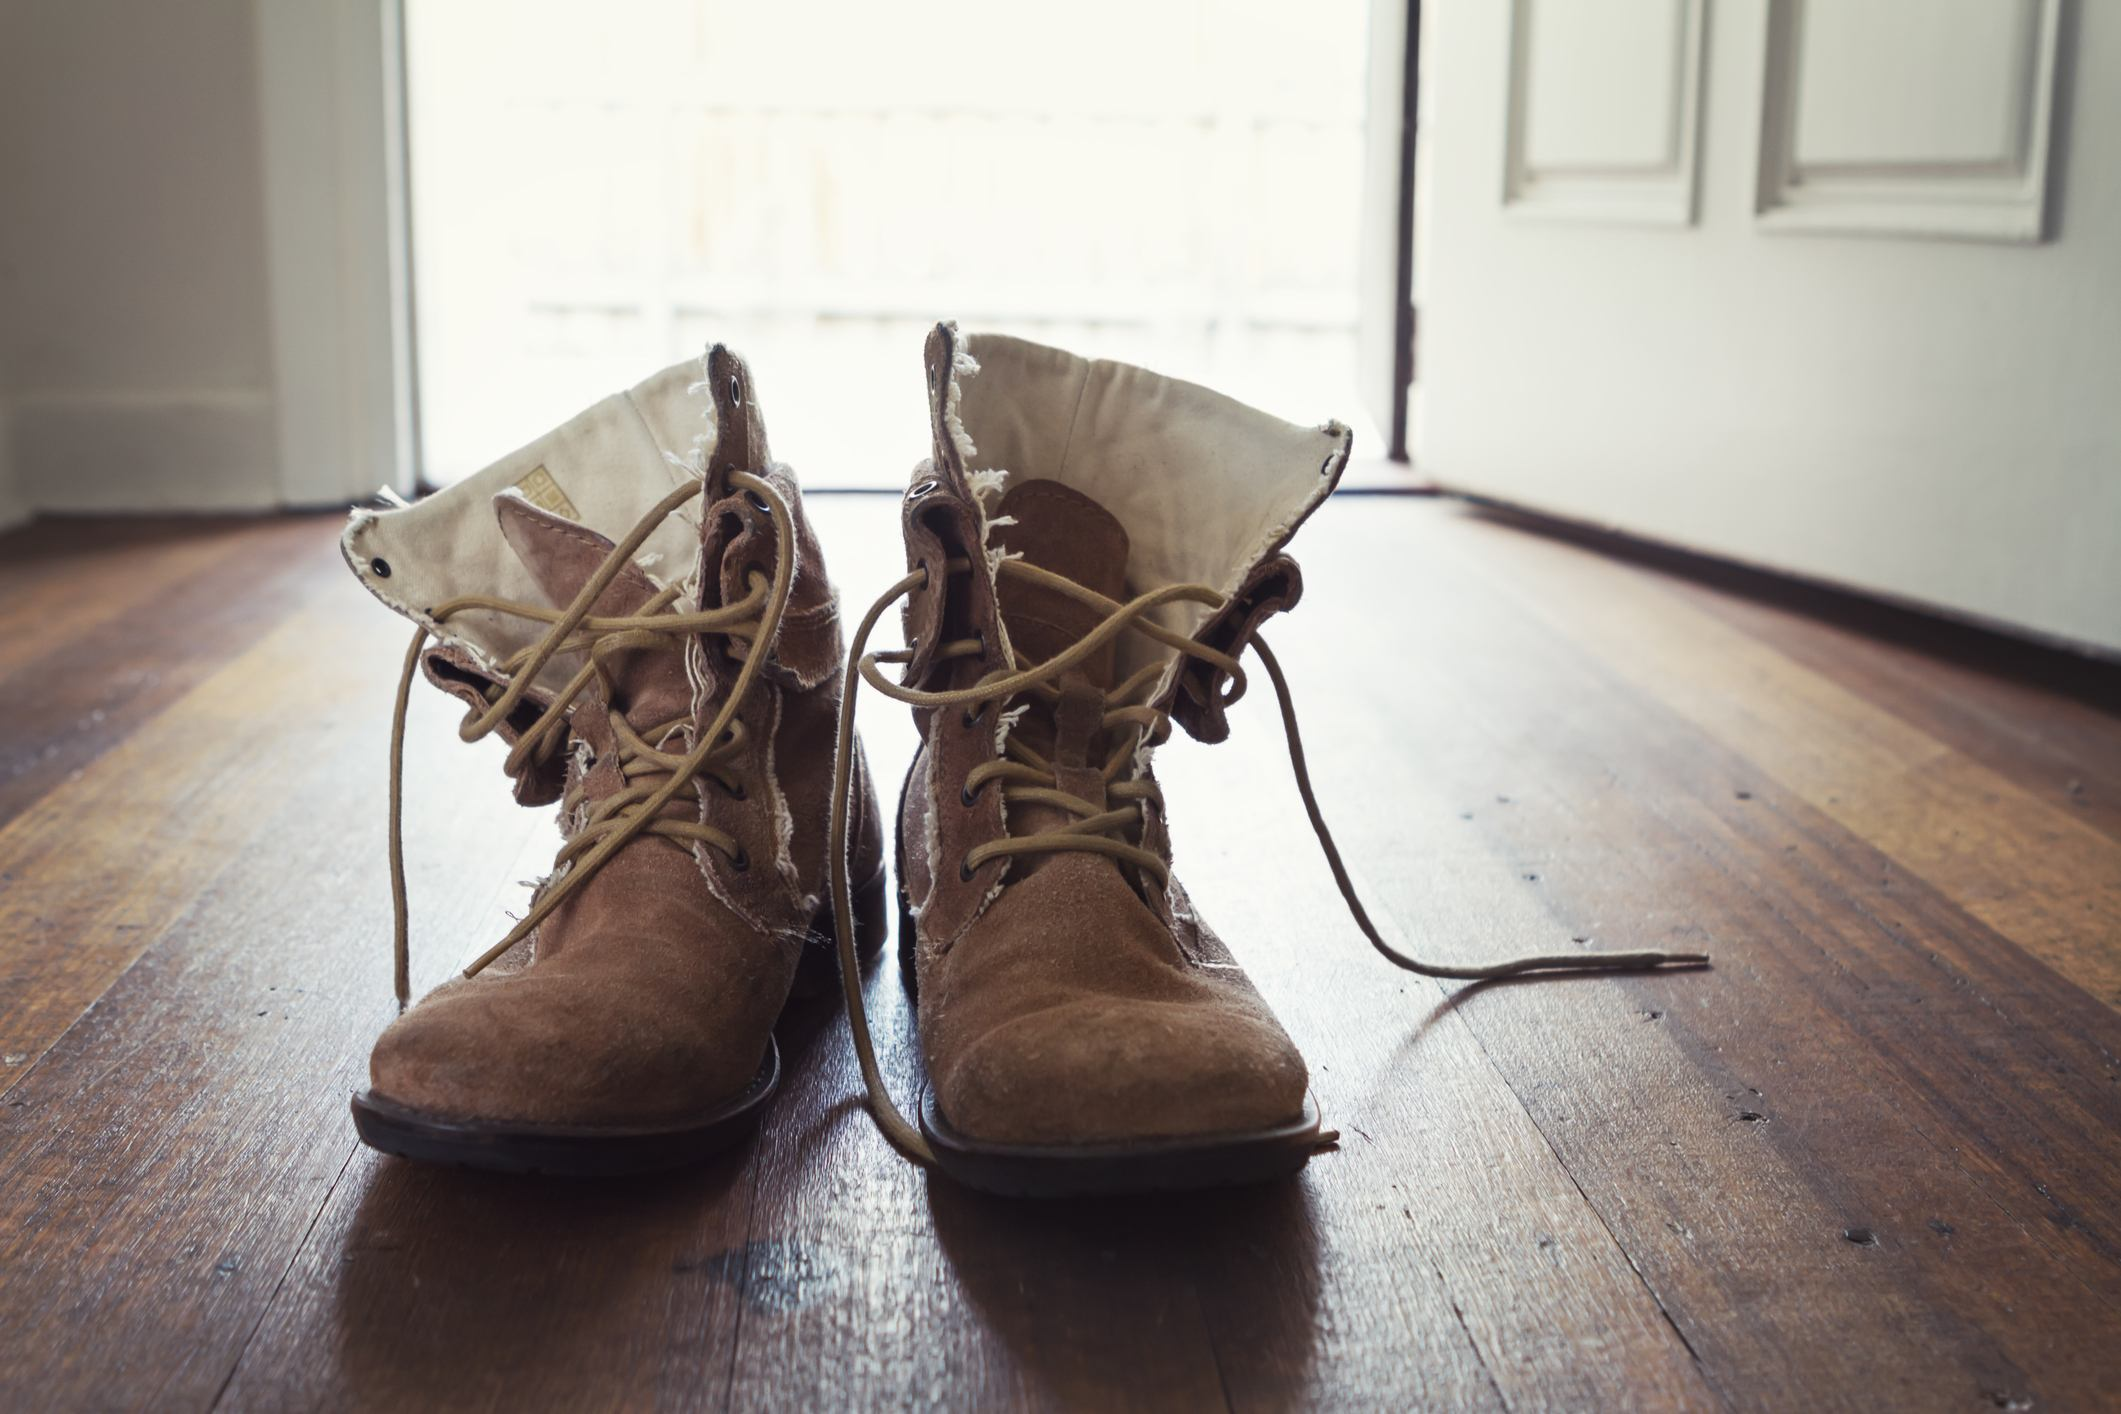 Pair of men's worn leather shoes or boots in doorway of home